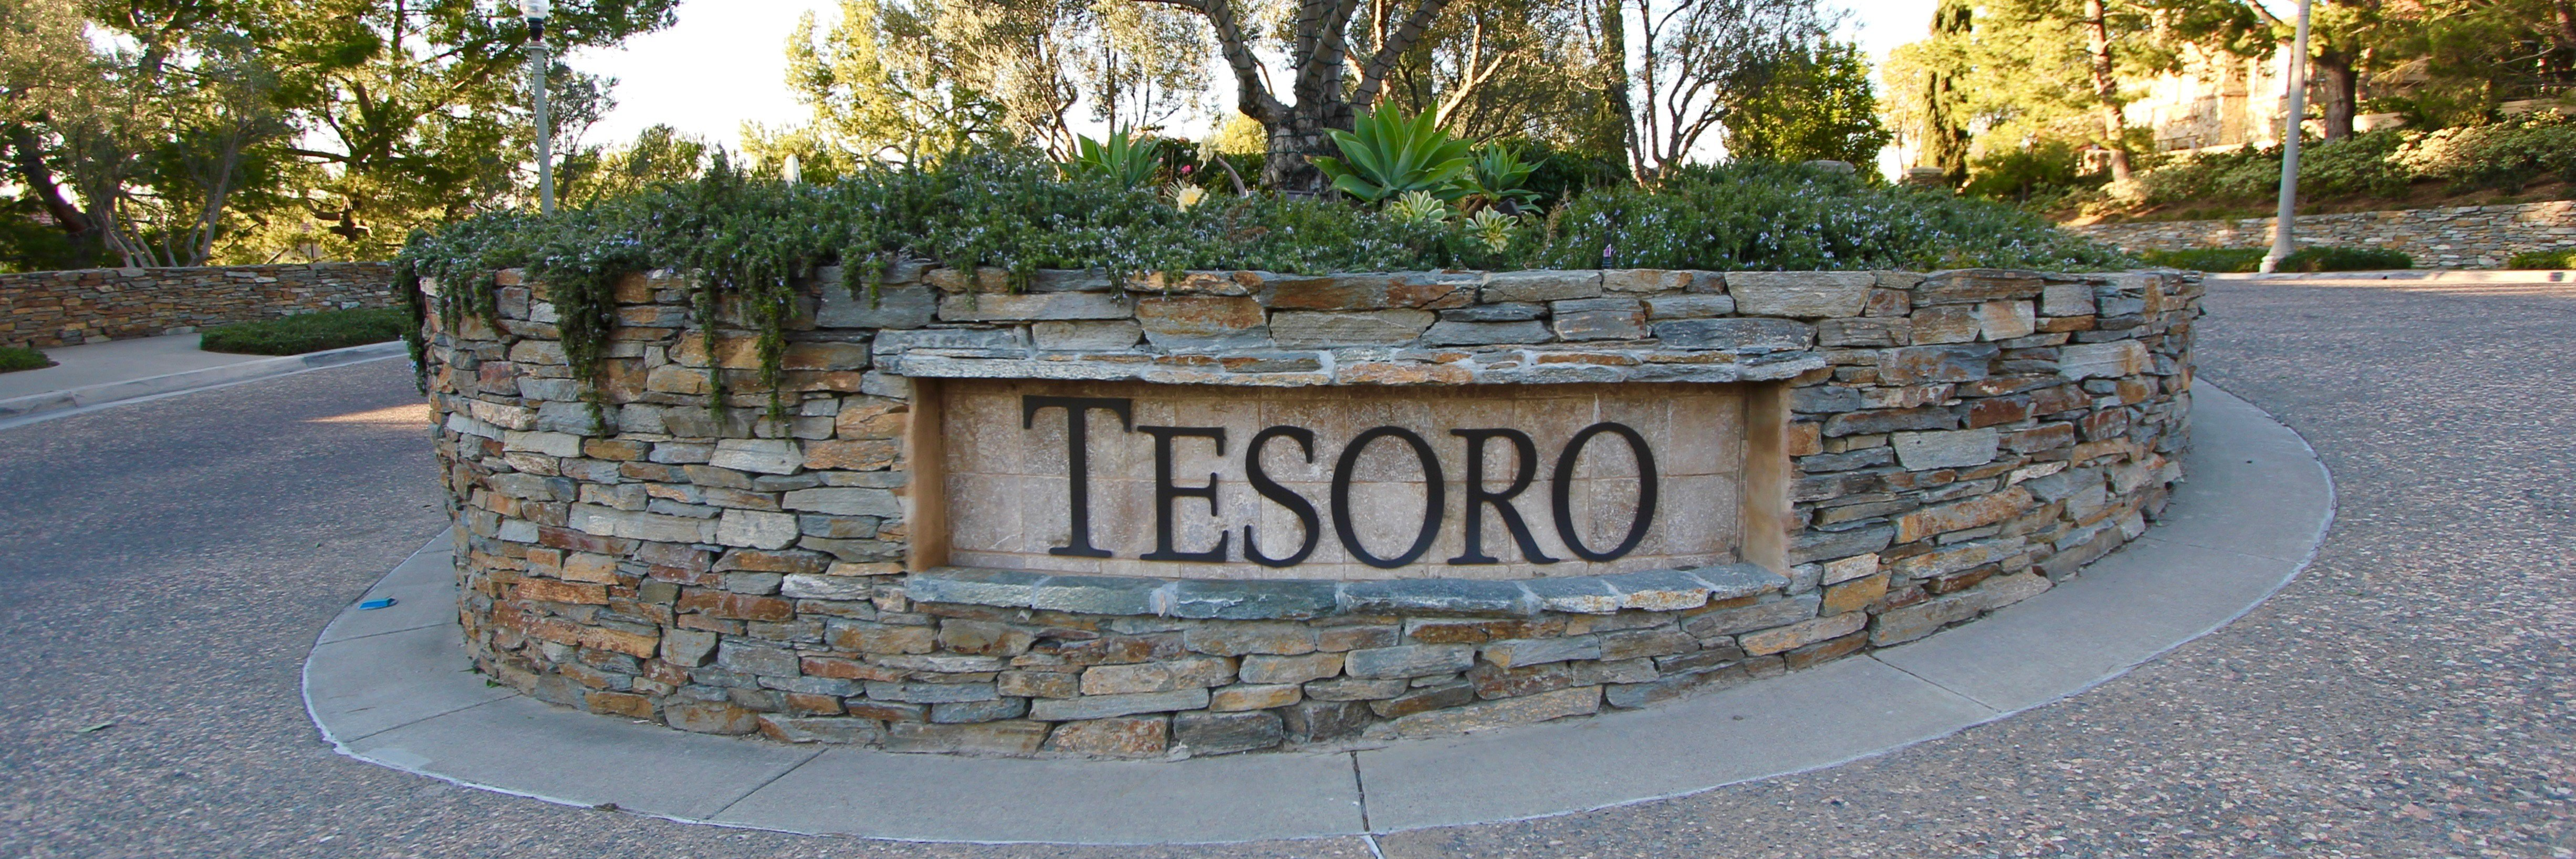 Tesoro Villas is a gated home community in Newport Coast CA